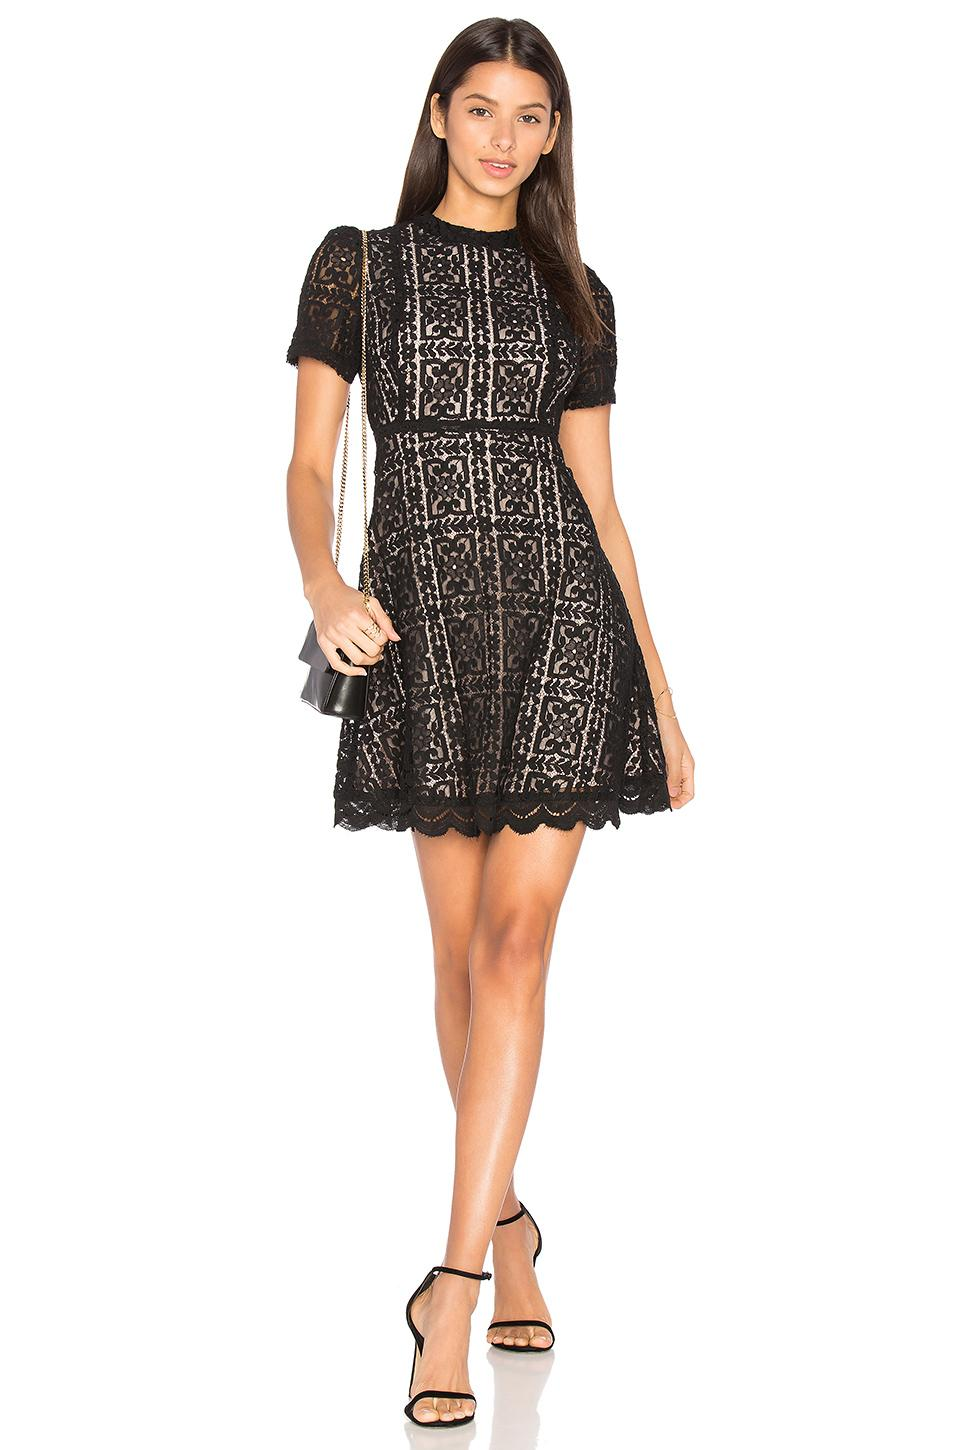 BBB Fashion in Phoenix, AZ -- Get driving directions to W Indian School Rd Phoenix, AZ Add reviews and photos for BBB Fashion. BBB Fashion appears in: Clothing Stores, Department Stores, Women's Clothing, Glass & Glass Products Dealers, Discount Stores.